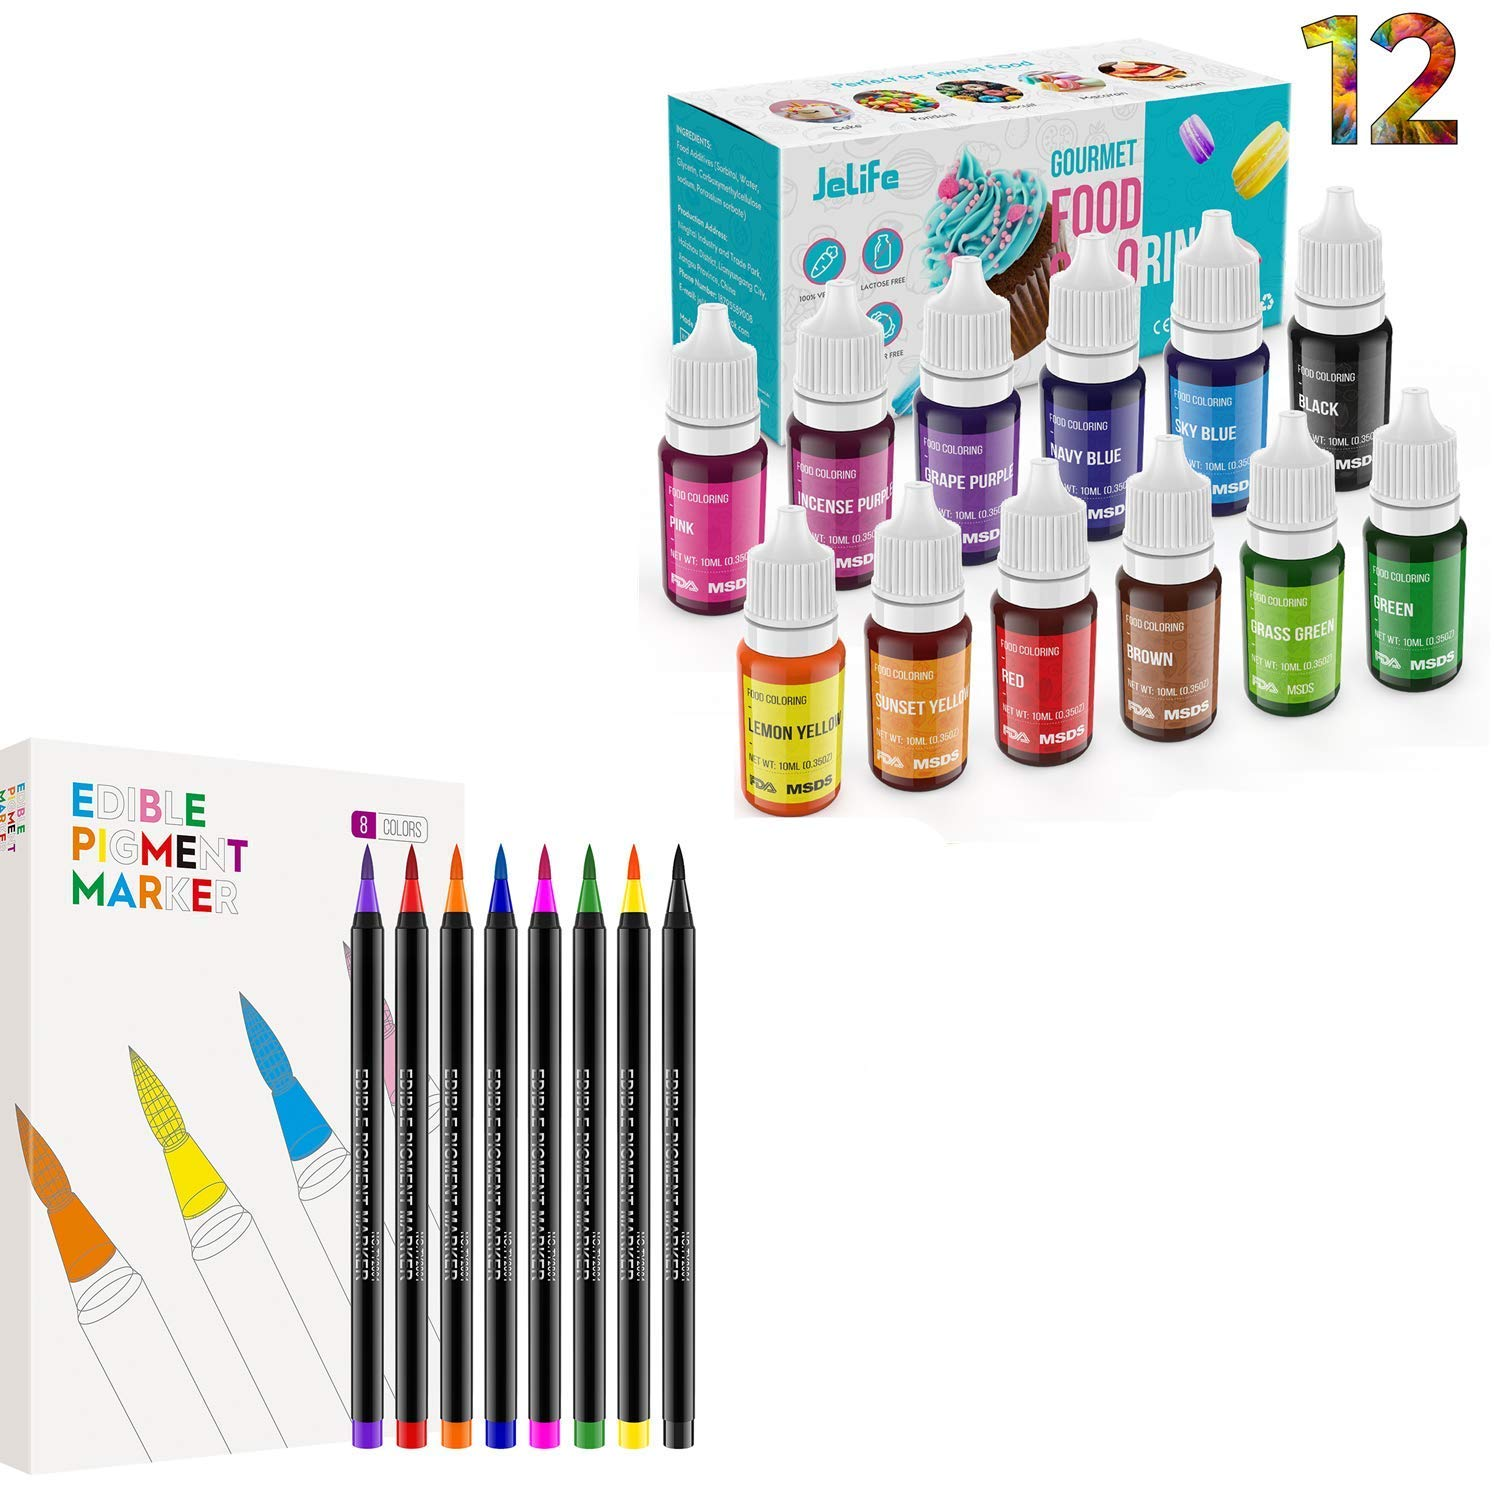 ValueTalks Food Grade Liquid Food Coloring +Edible Markers Vibrant Colors Tasteless Vegan Free Icing Colors Dye for Baking, Cooking, Decorating, Fondant, Slime DIY